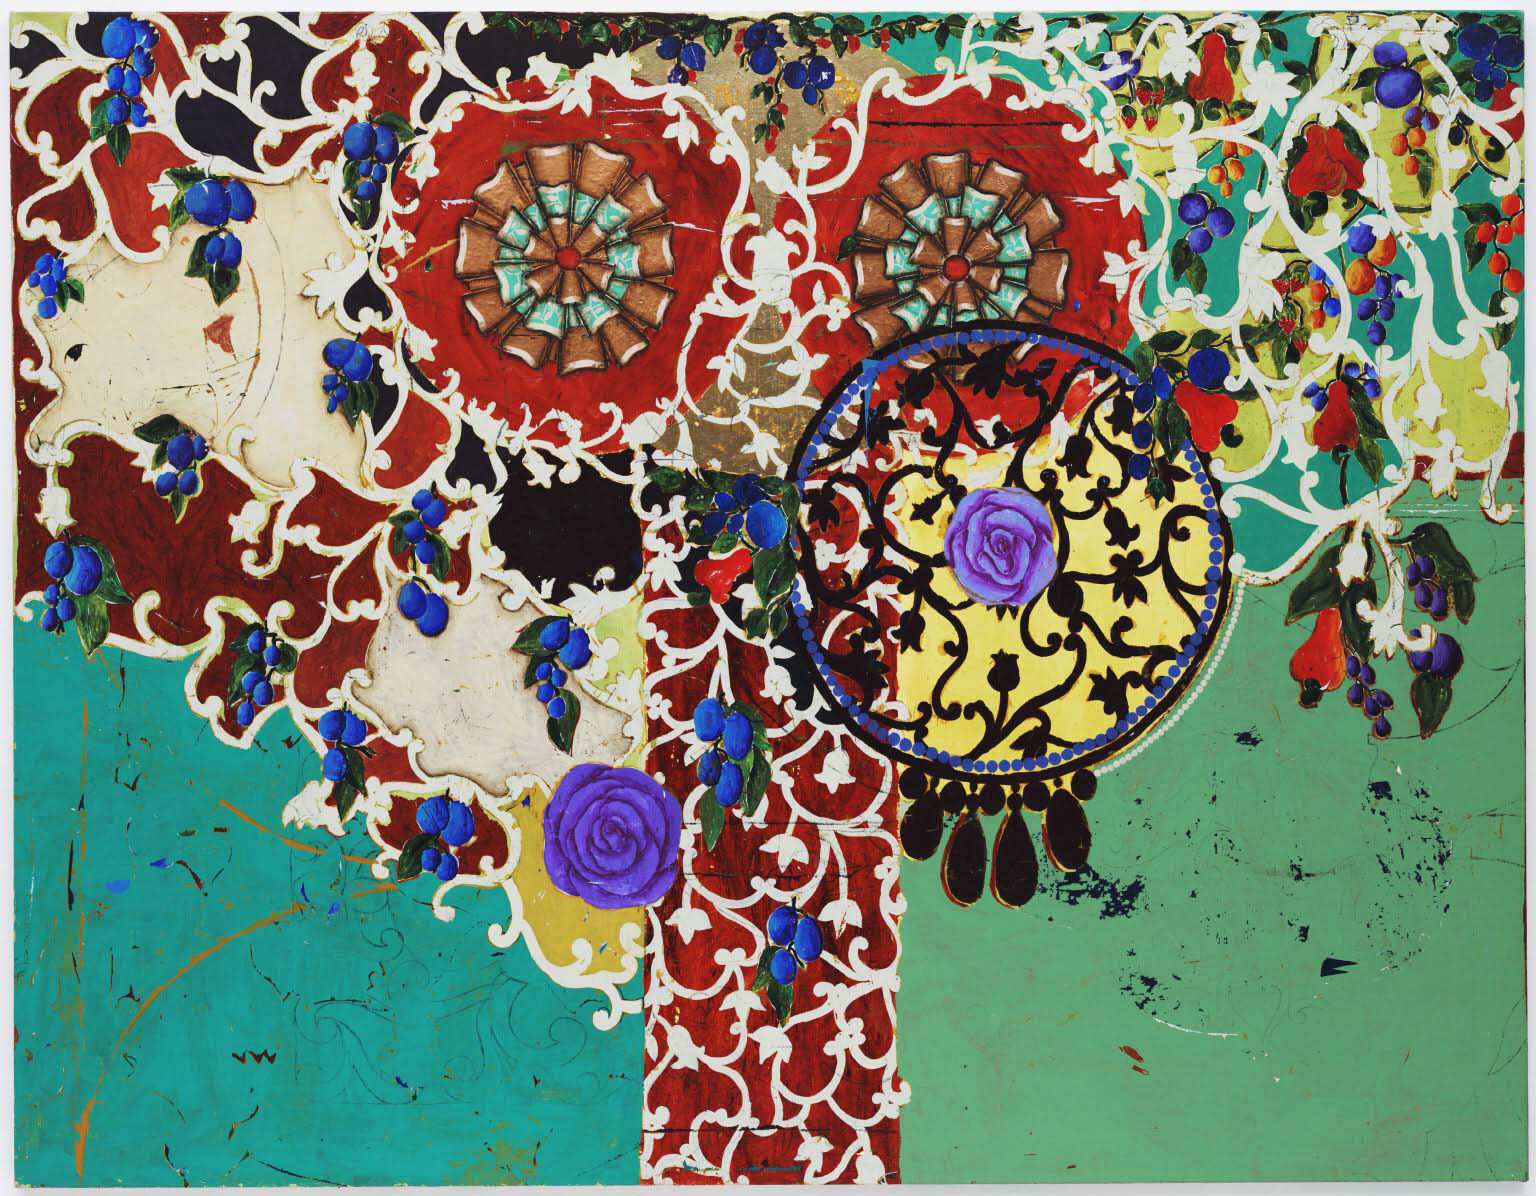 Beatriz Milhazes. Succulent Eggplants. 1996. Synthetic polymer paint on canvas, 74 3⁄4 × 96 1/2″ (189.9 × 245.1 cm). Gift of Agnes Gund and Nina and Gordon Bunshaft Bequest Fund. © 2007 Beatriz Milhazes